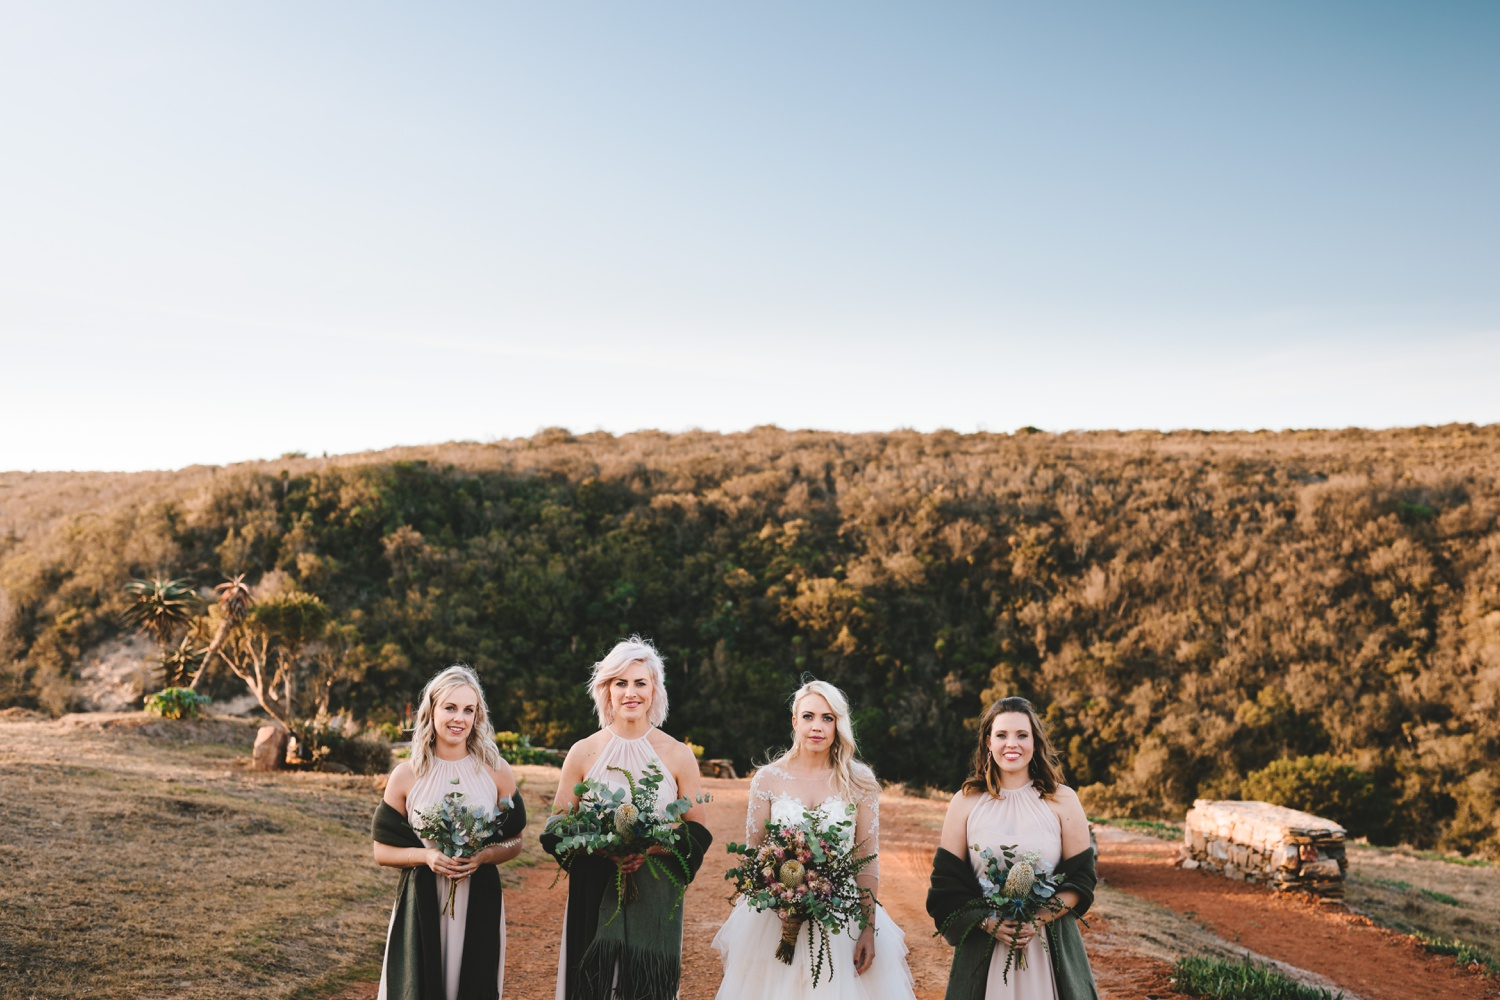 cathryn_warwick_wearecharlieray_hopewell_conservation_eastern_cape_wedding_0099.jpg